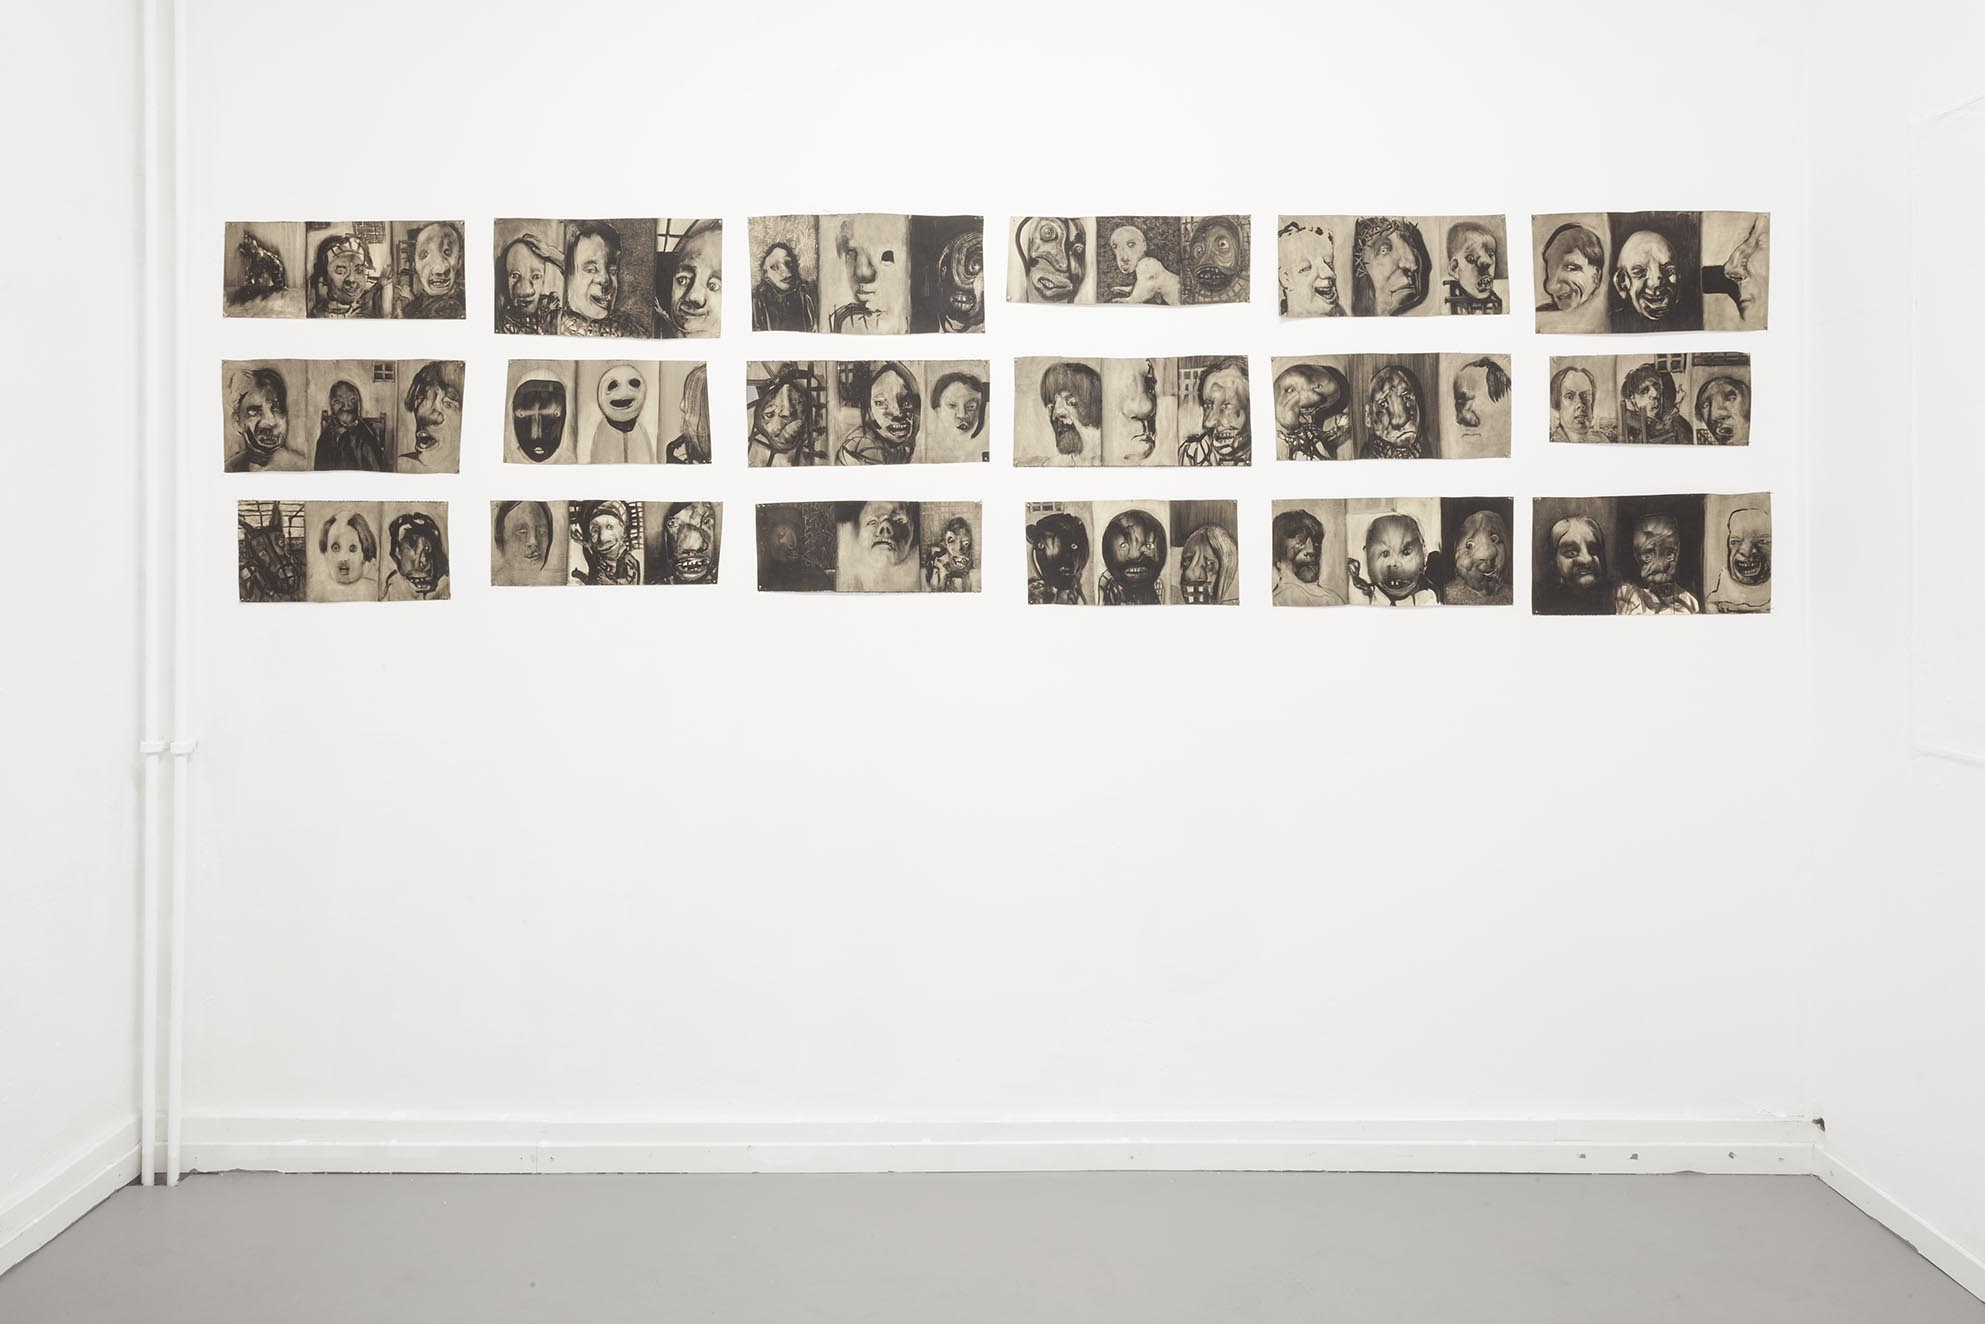 Hans Witschi,  Human Being: Rough Draft, 54 Studies in Groups of Three , 1984, oil on primed canvas, ca. 100 x 310 cm Photo: Christoph Oeschger